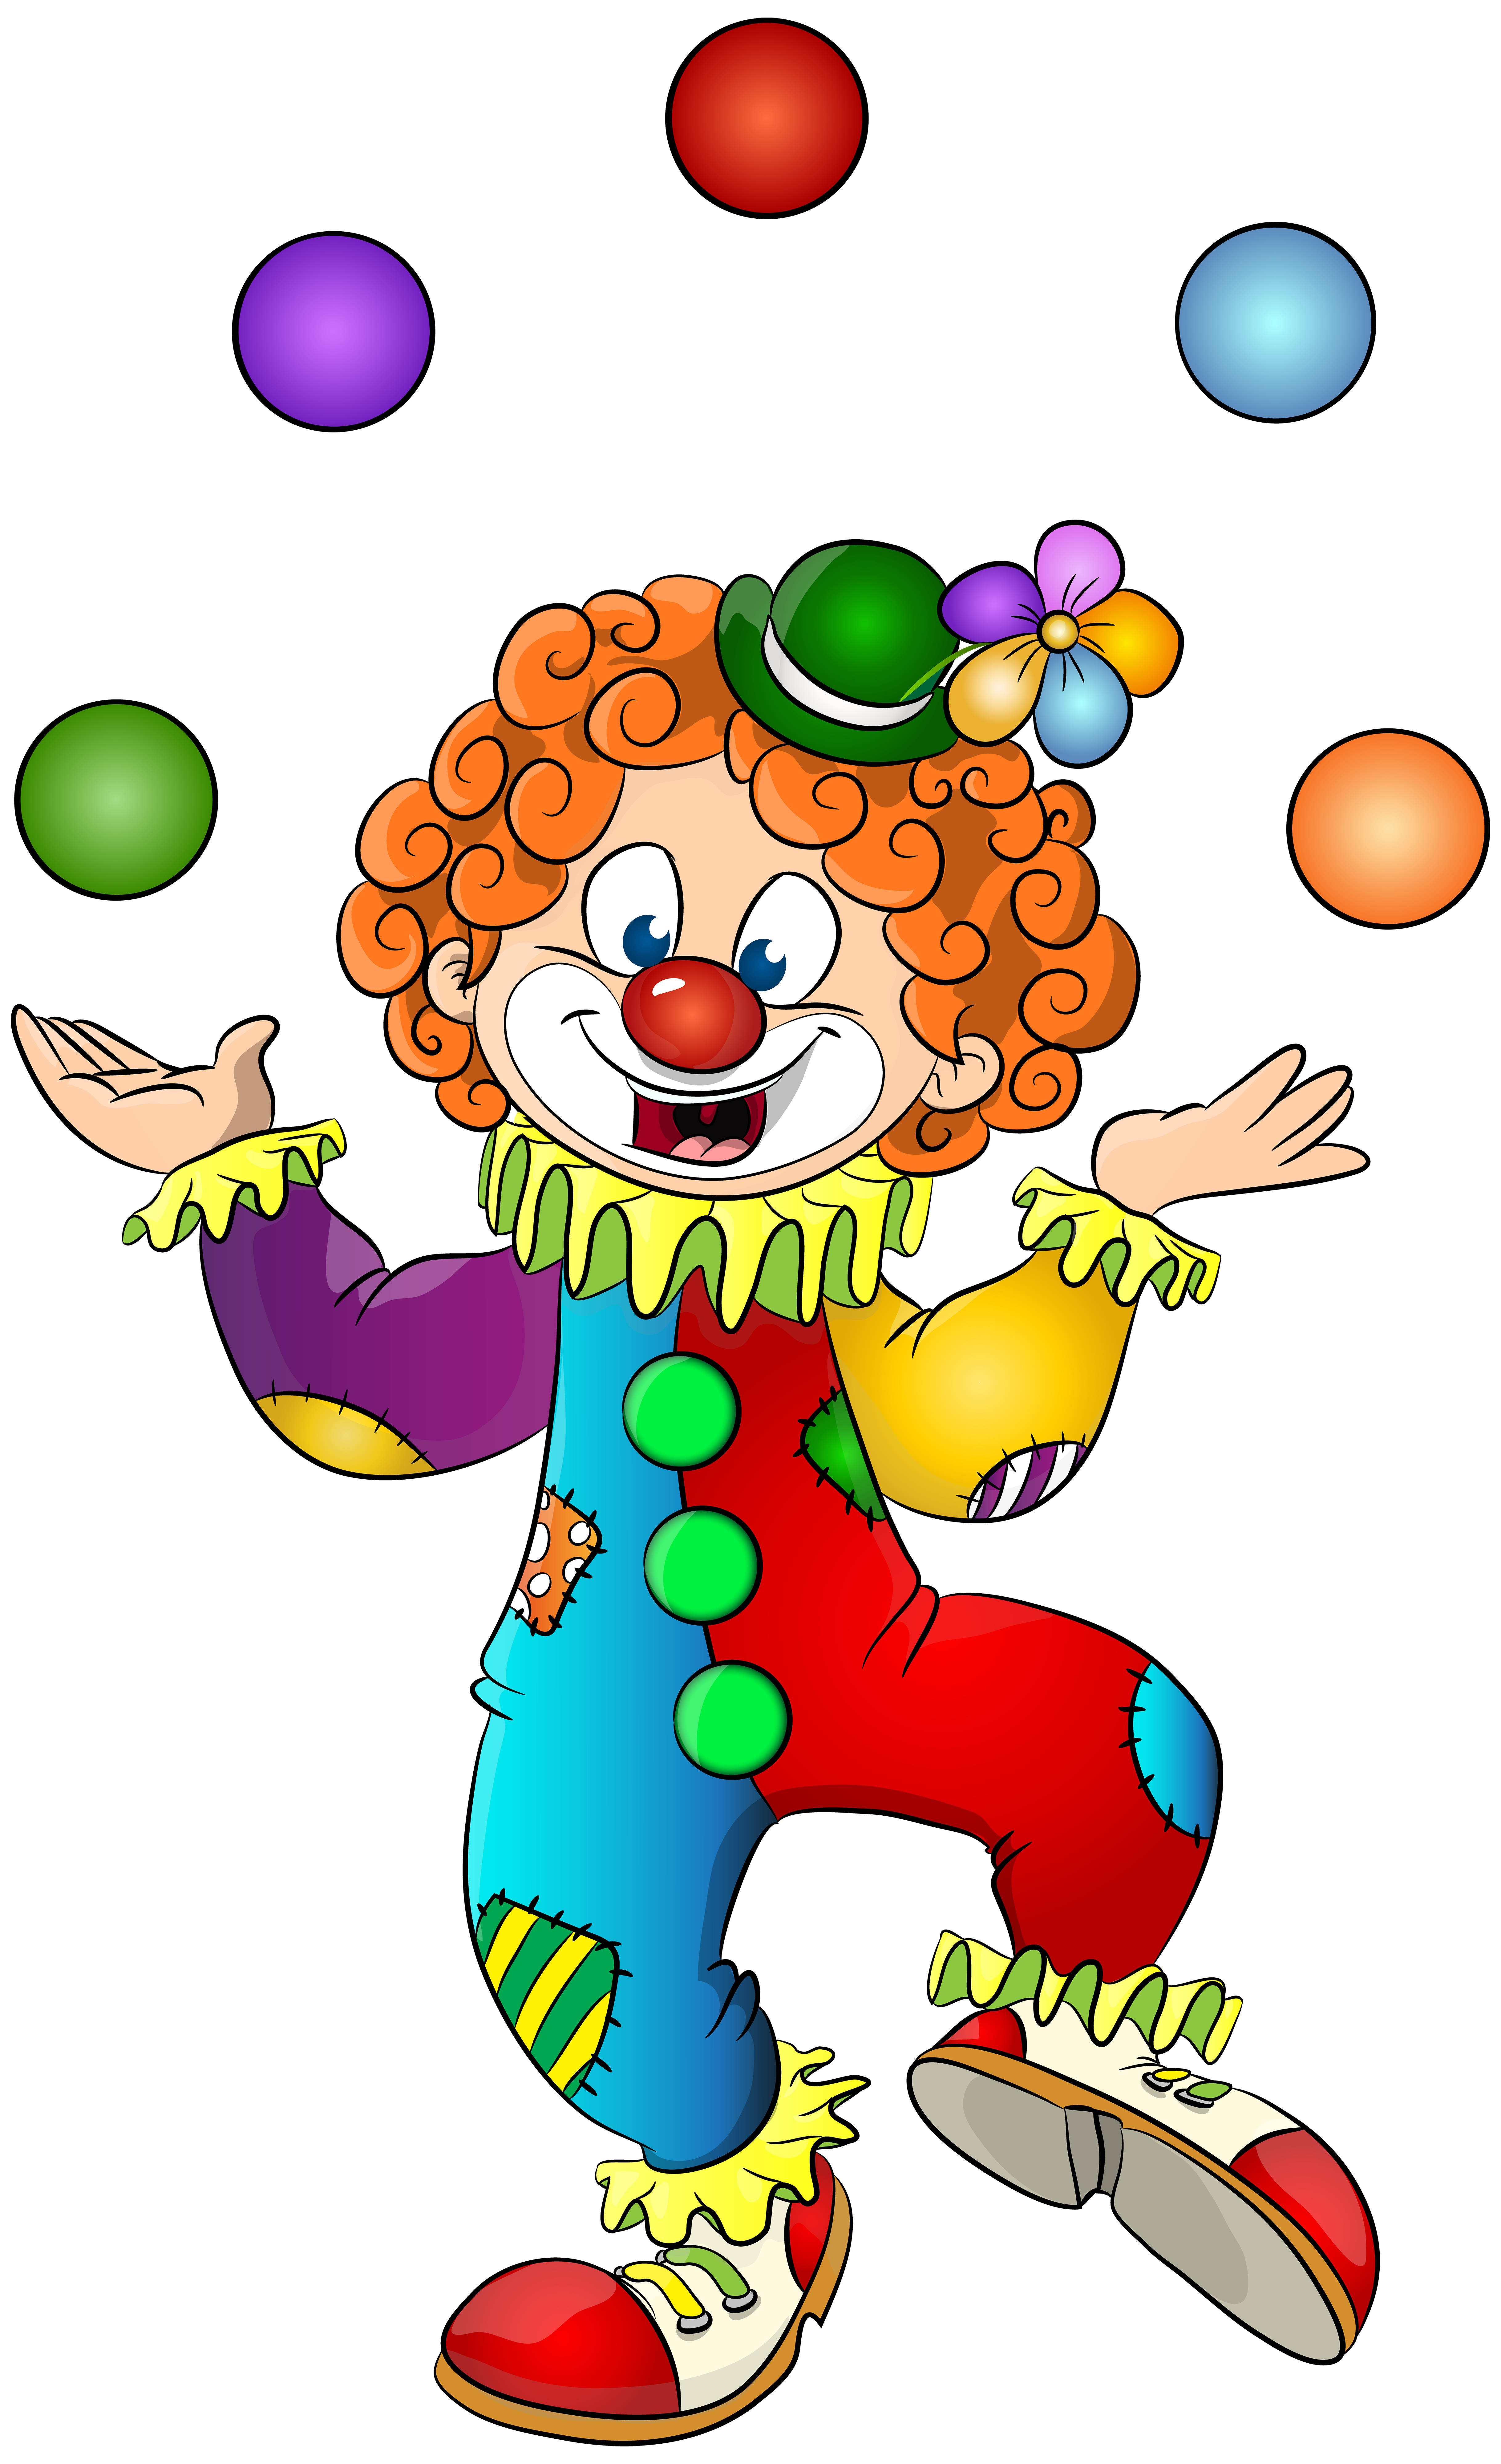 Transparent clip art image. Clown clipart png royalty free stock